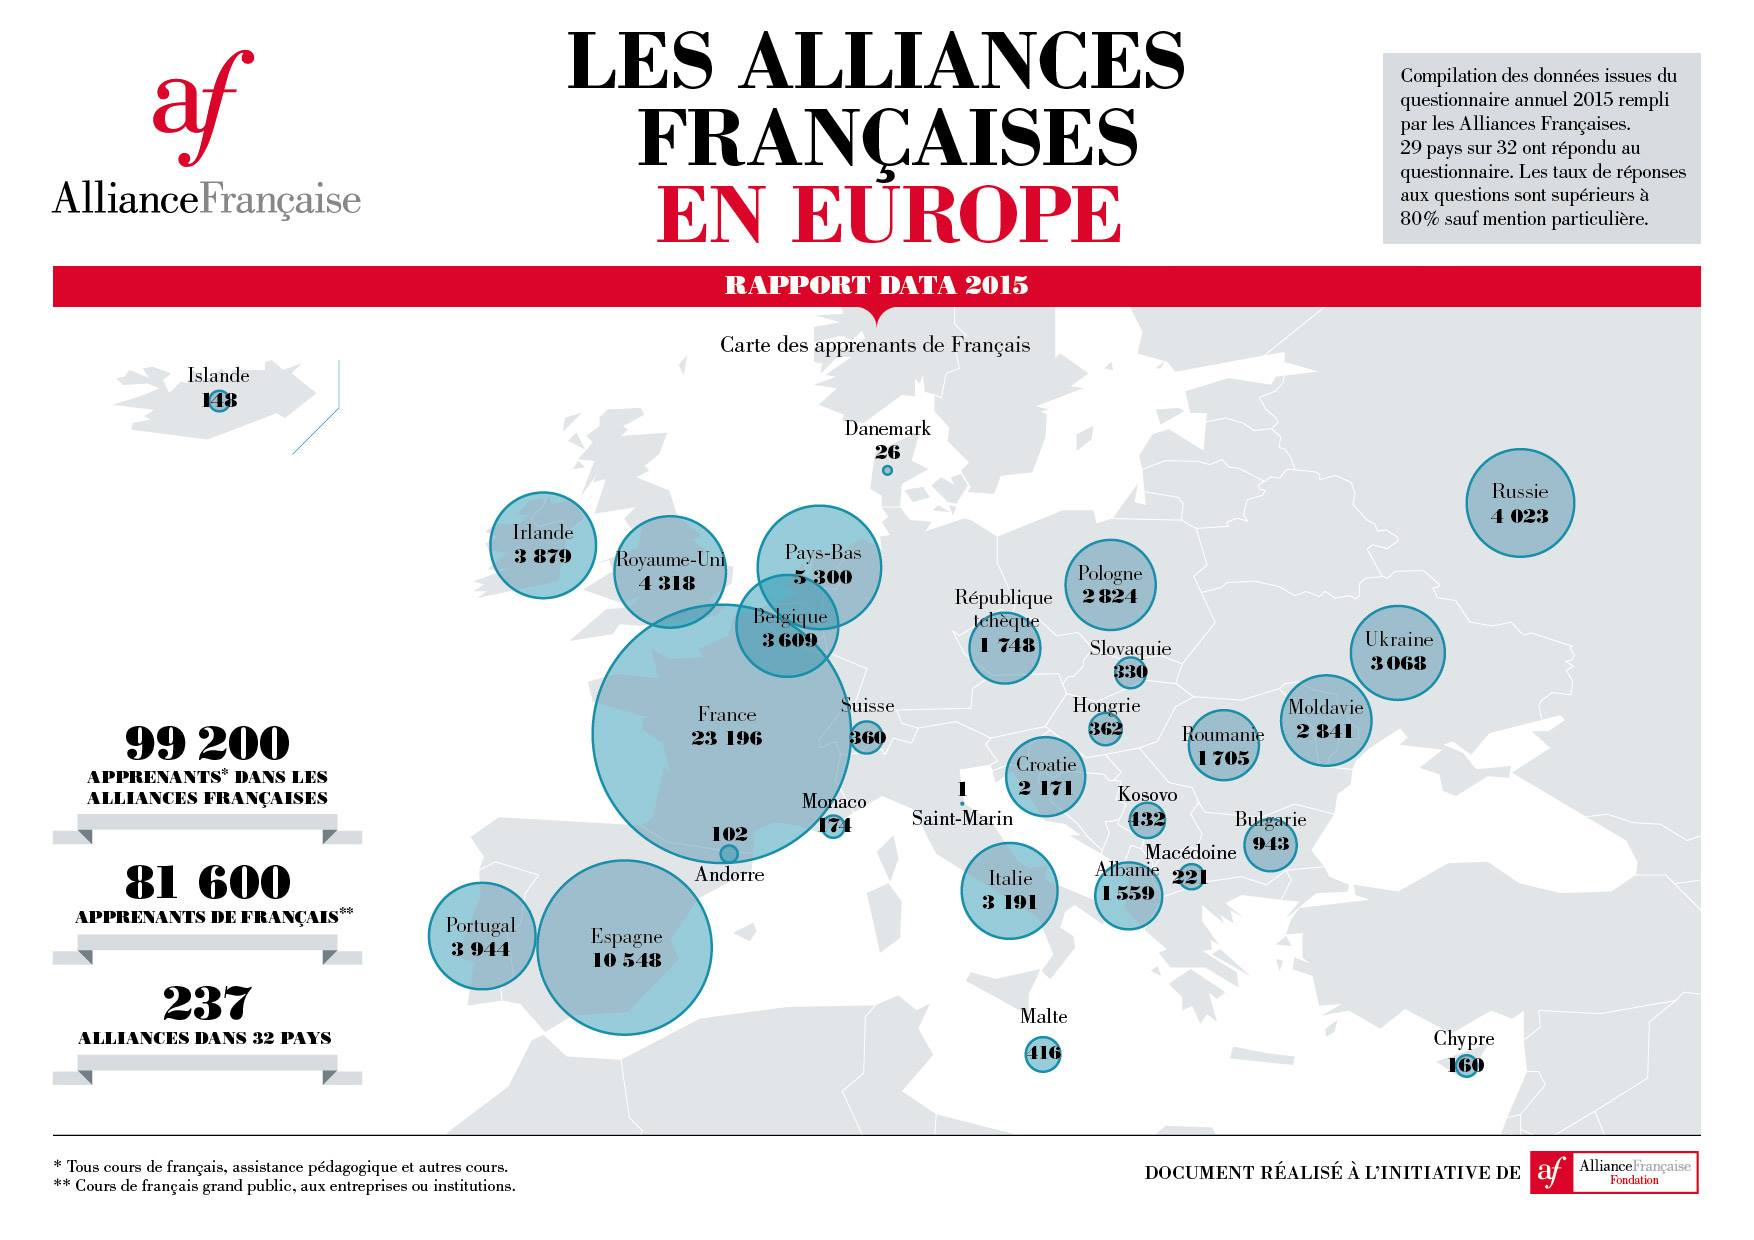 alliances-francaises-europe-lecafedufle